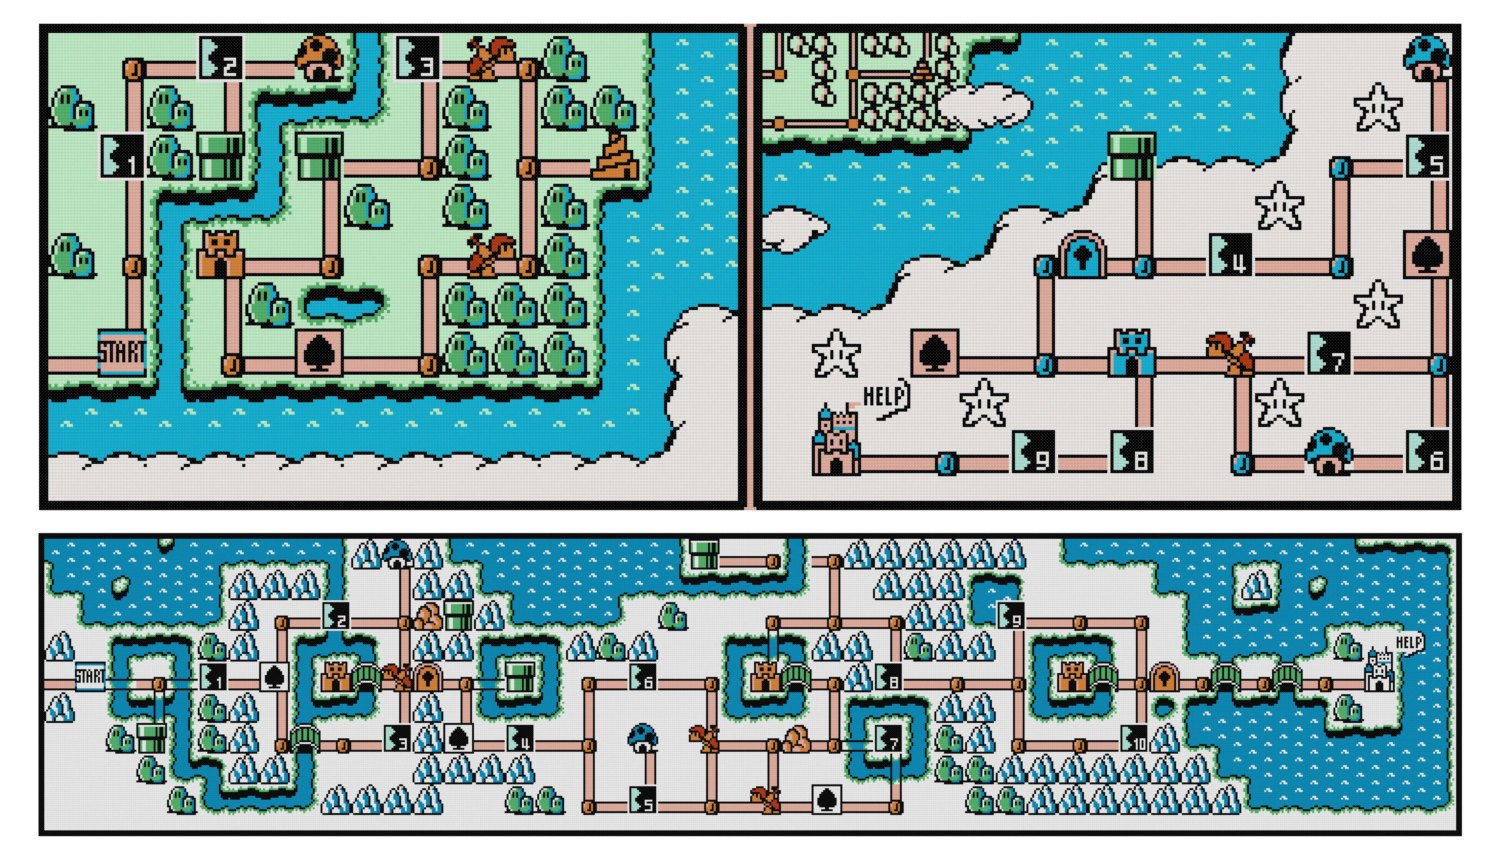 Super Mario Bros 3 World Maps 1 8 Cross Stitch Patterns Bundle